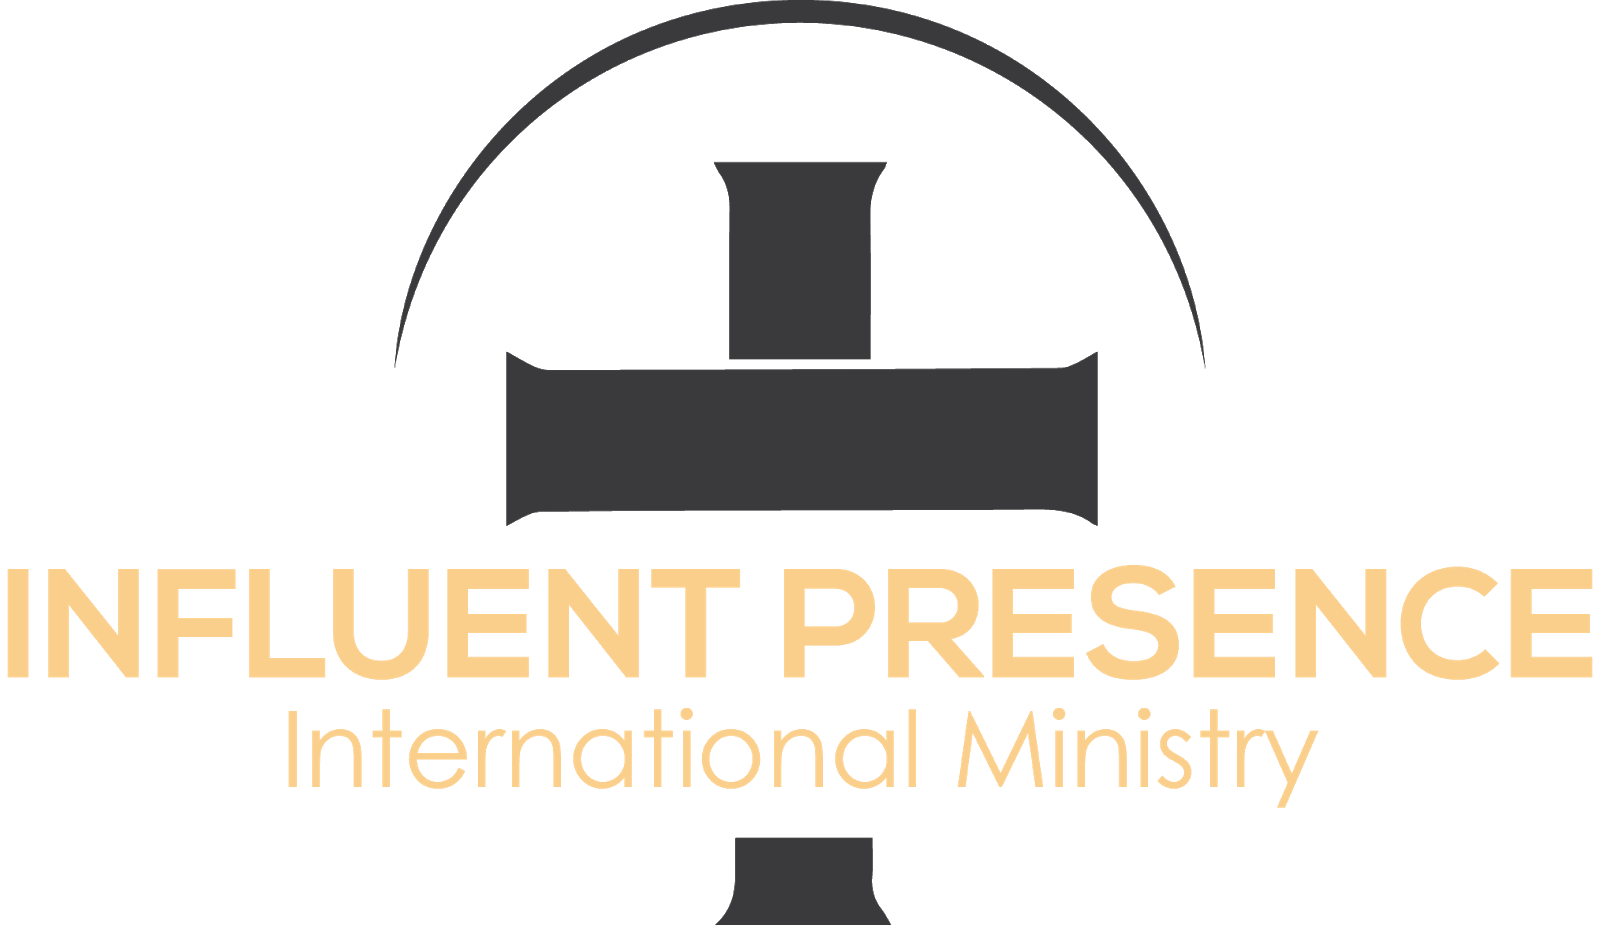 Influent Presence International Ministry